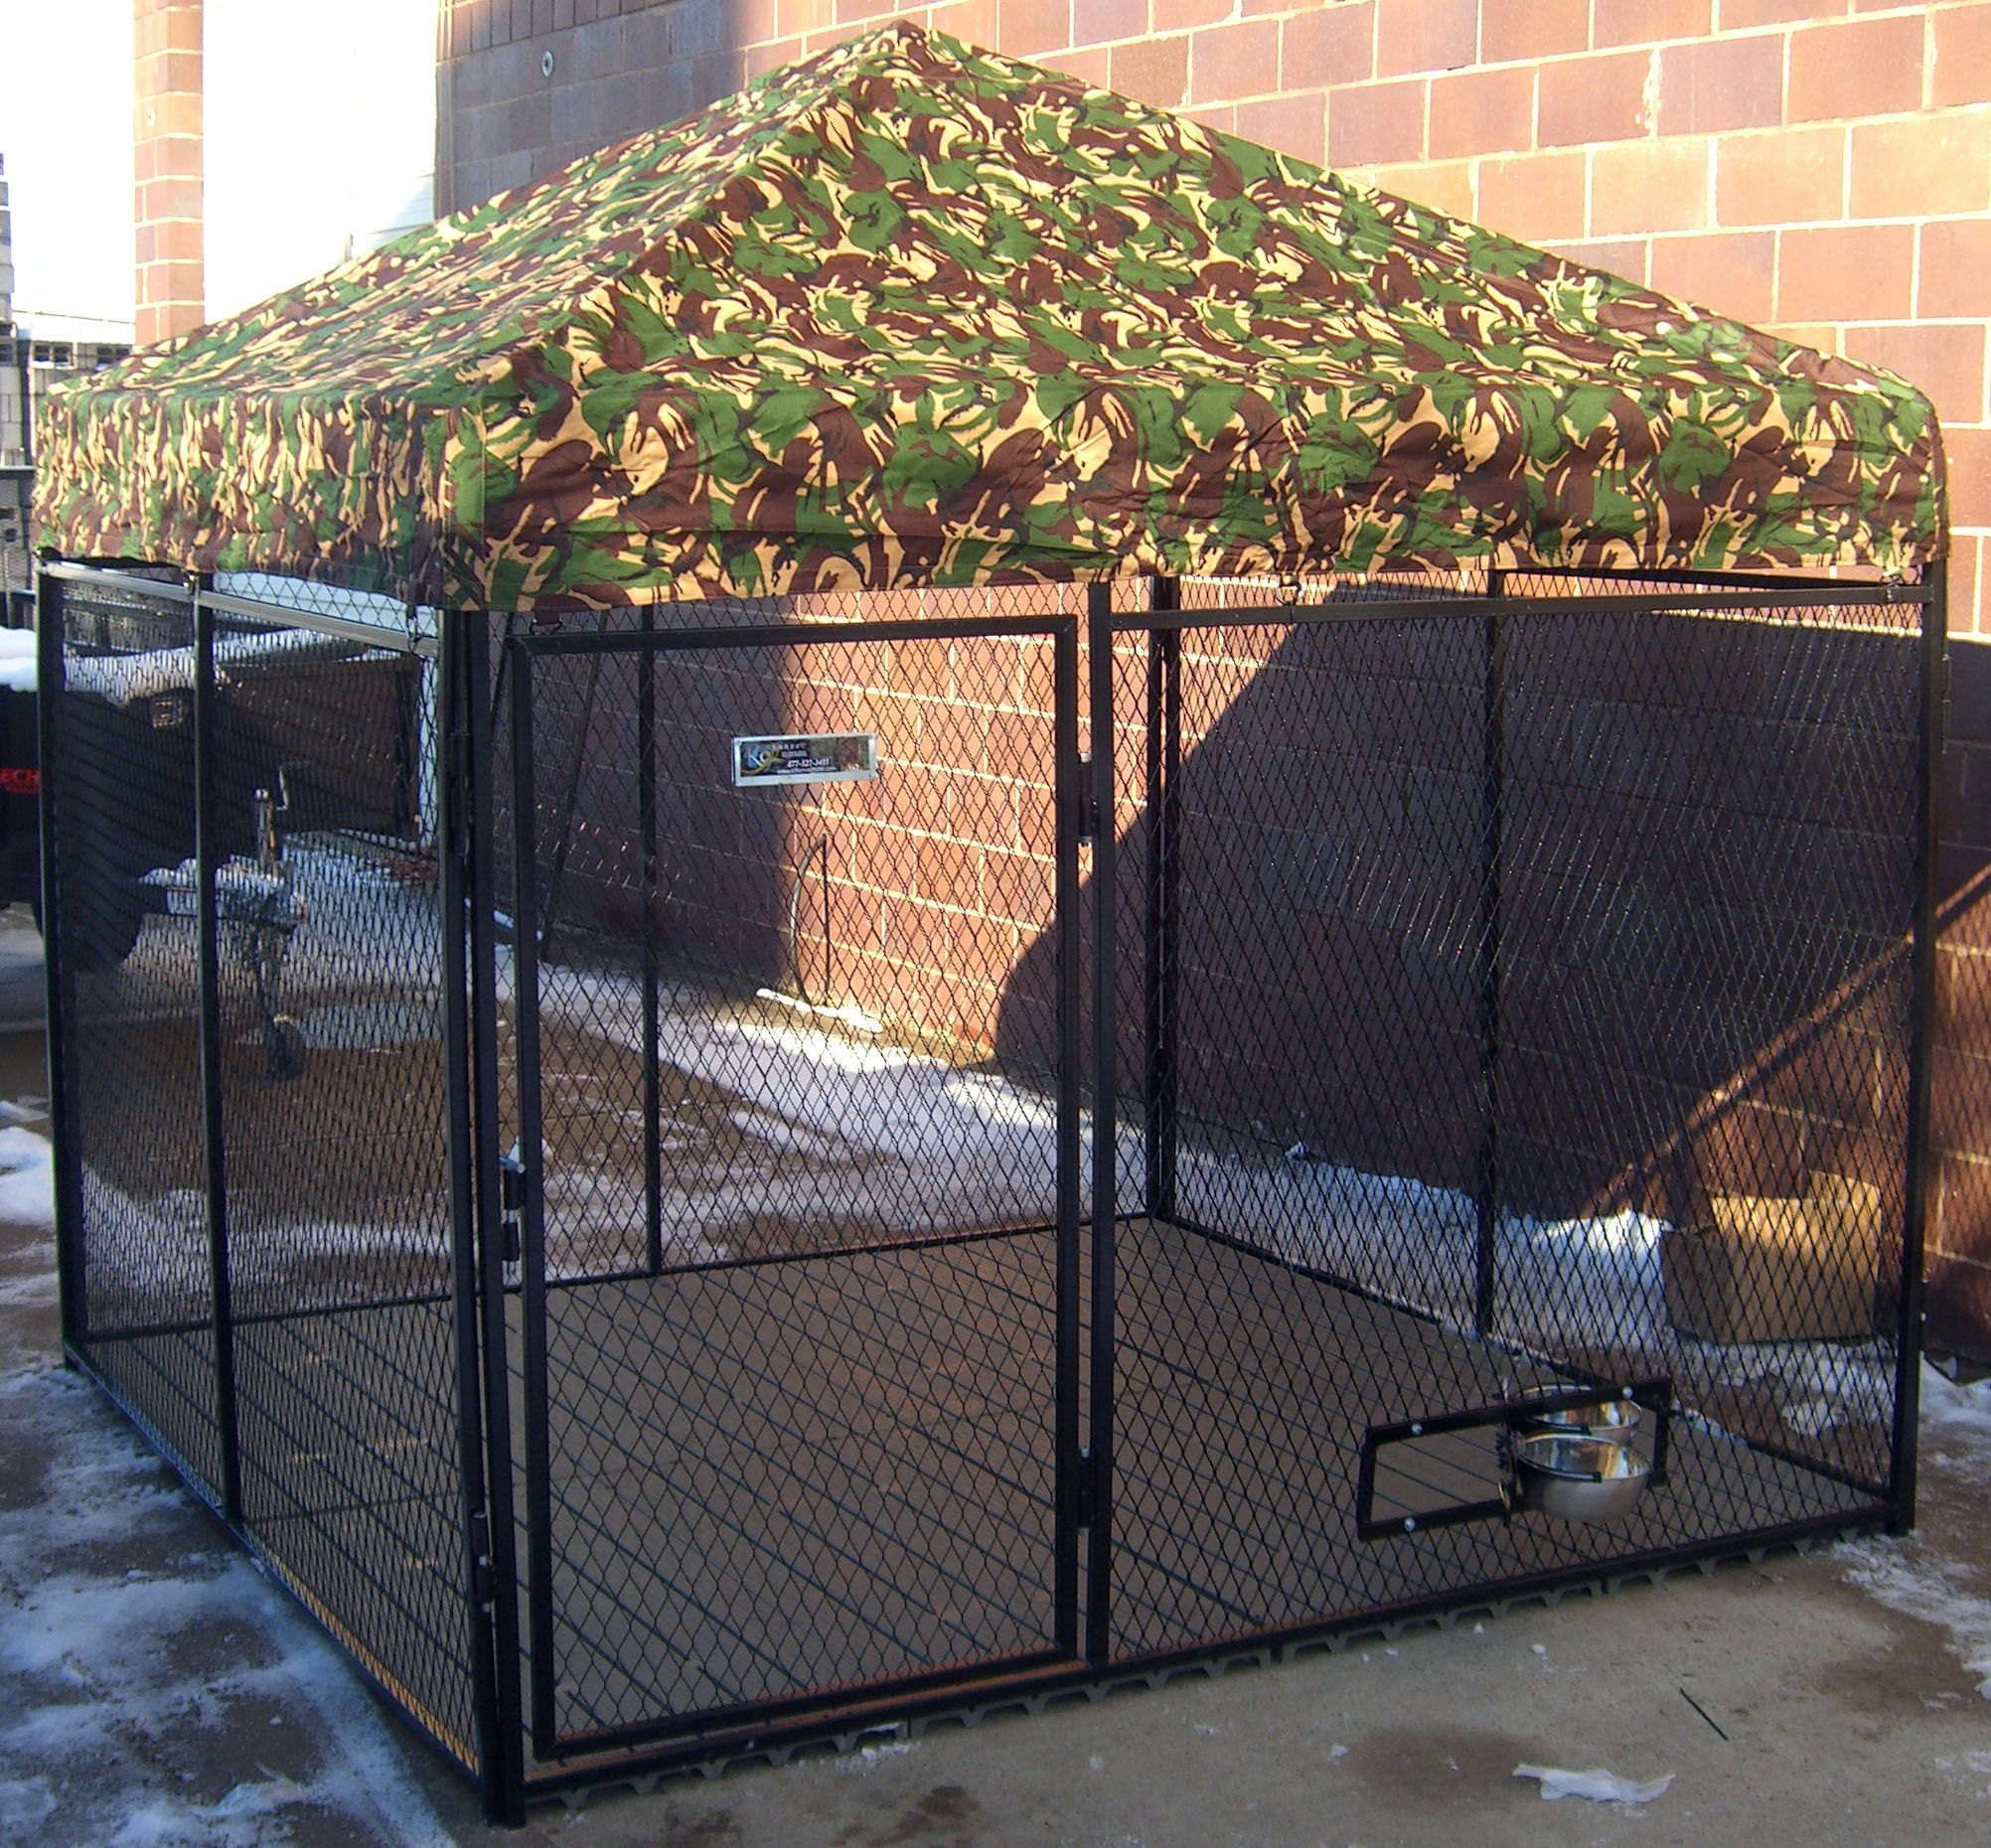 Raised Kennel Flooring With Slats Built In Keeping Them Dry And Up Off The Ground From K9 Kennel Store Dog Kennel Flooring Dog Kennel Outdoor Dog Kennel